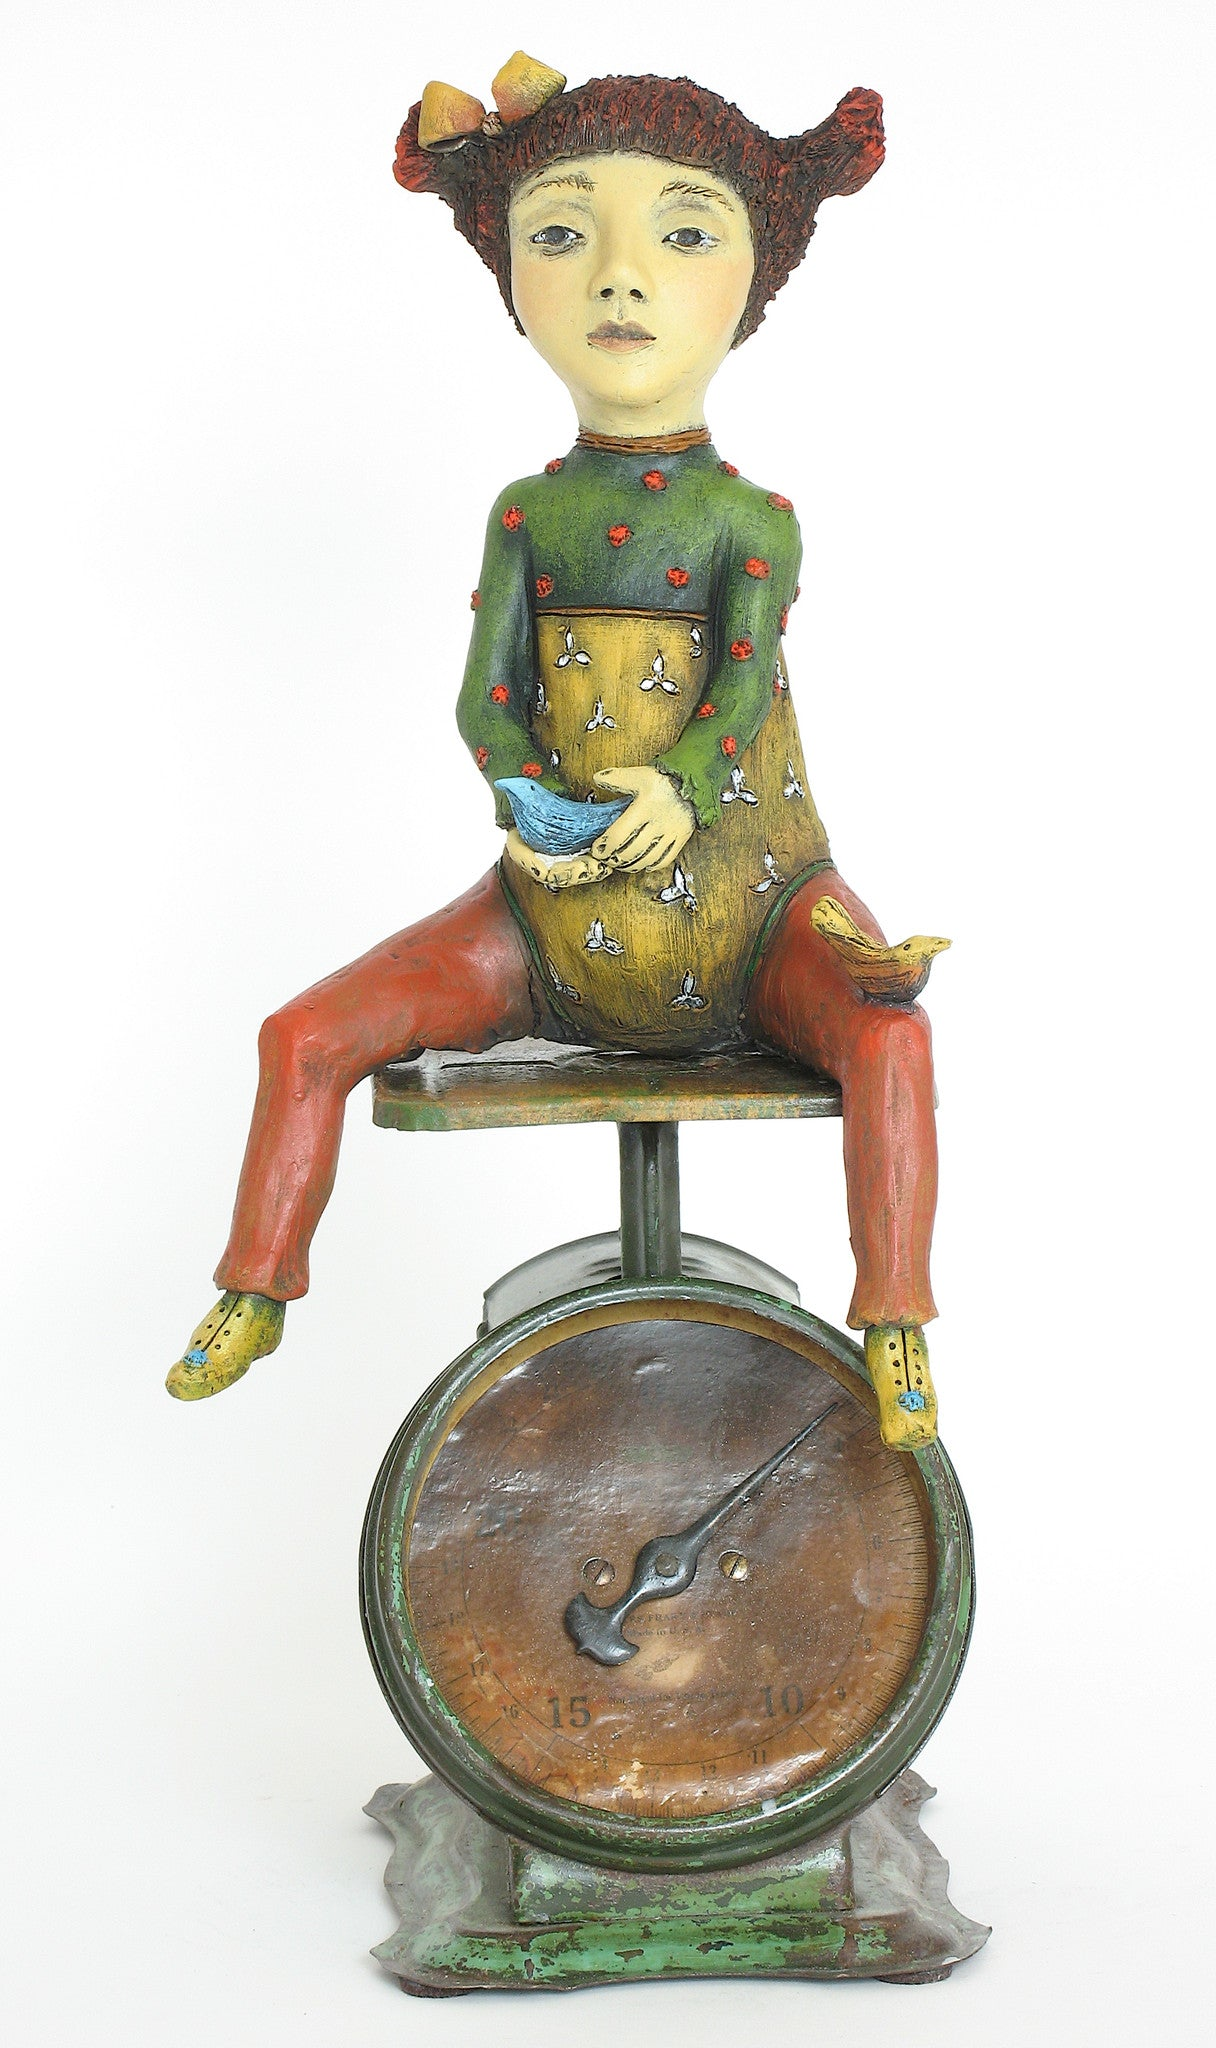 "SOLD  ""Weighing Her Options"" original ceramic sculpture with antique scale"" by Jacquline Hurlbert"